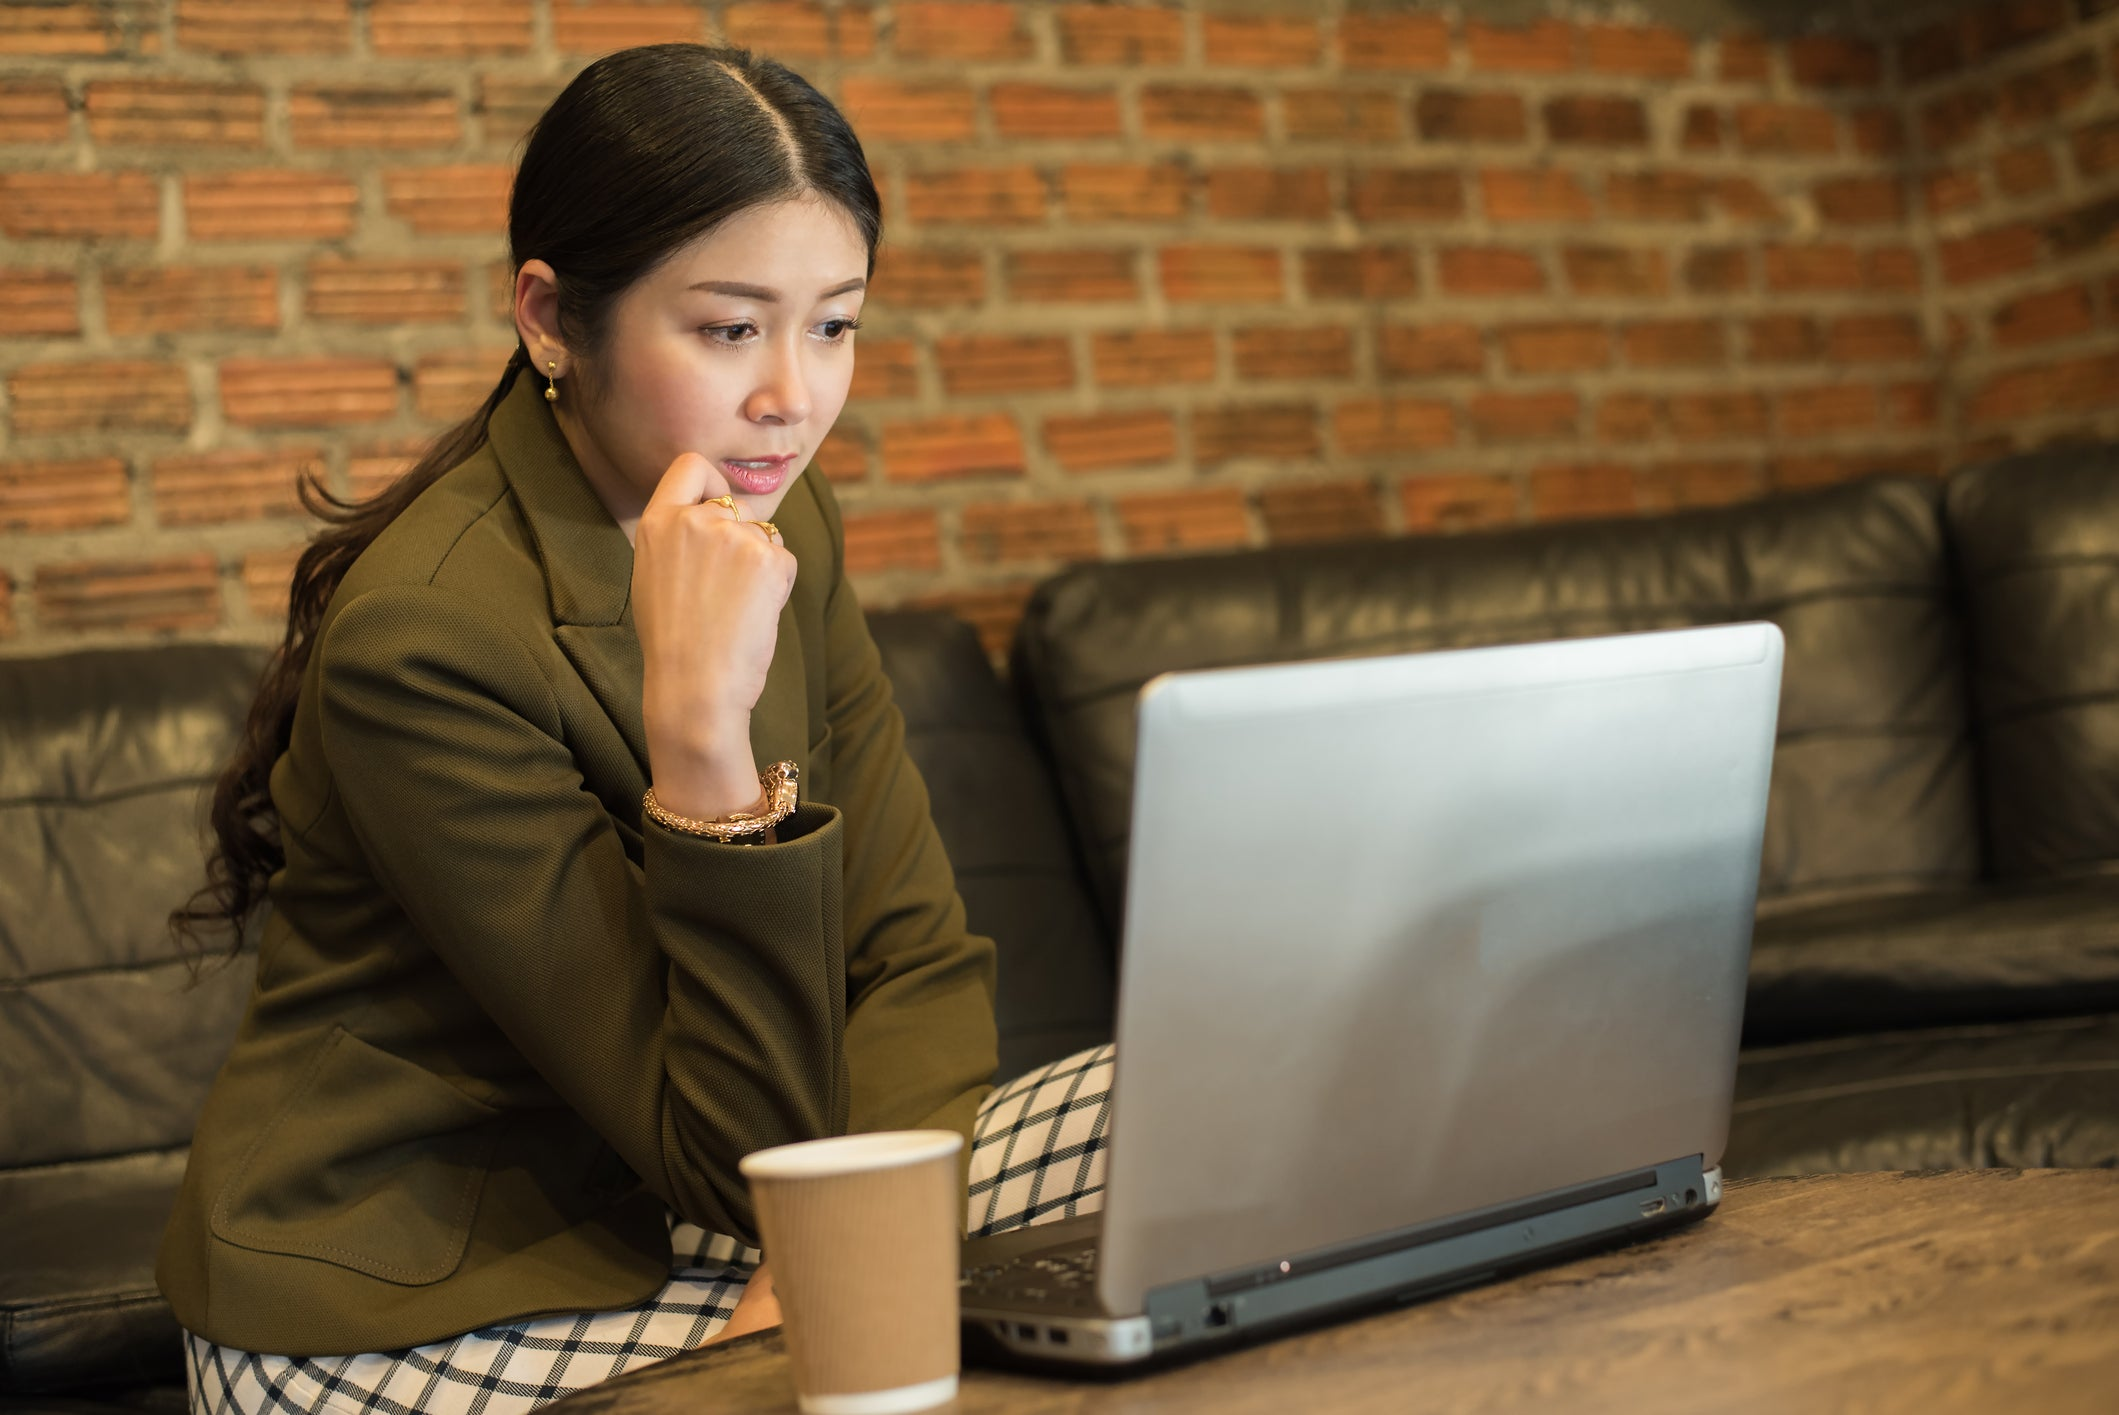 Self-Employed? You May Be Eligible for a $1,000 Grant During COVID-19 | The Motley Fool